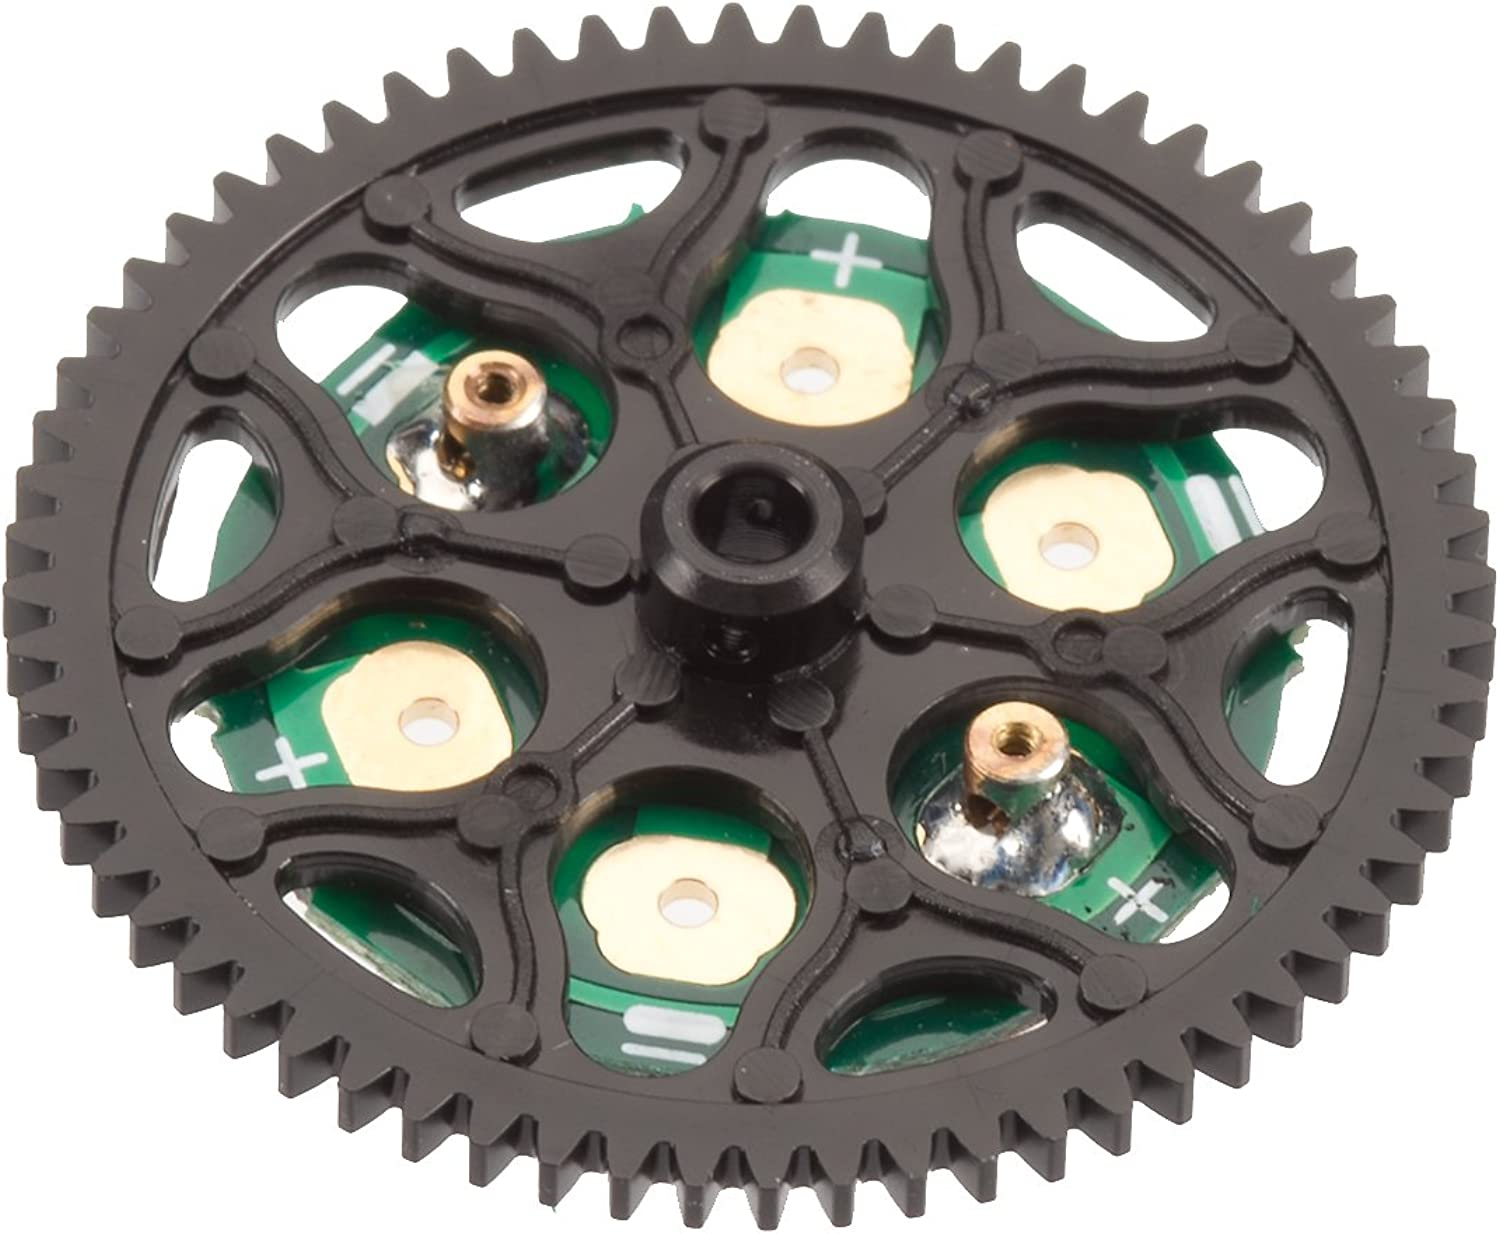 HeliMax Main Gear with with with LED Board for Axe 100 SSL 03d46a